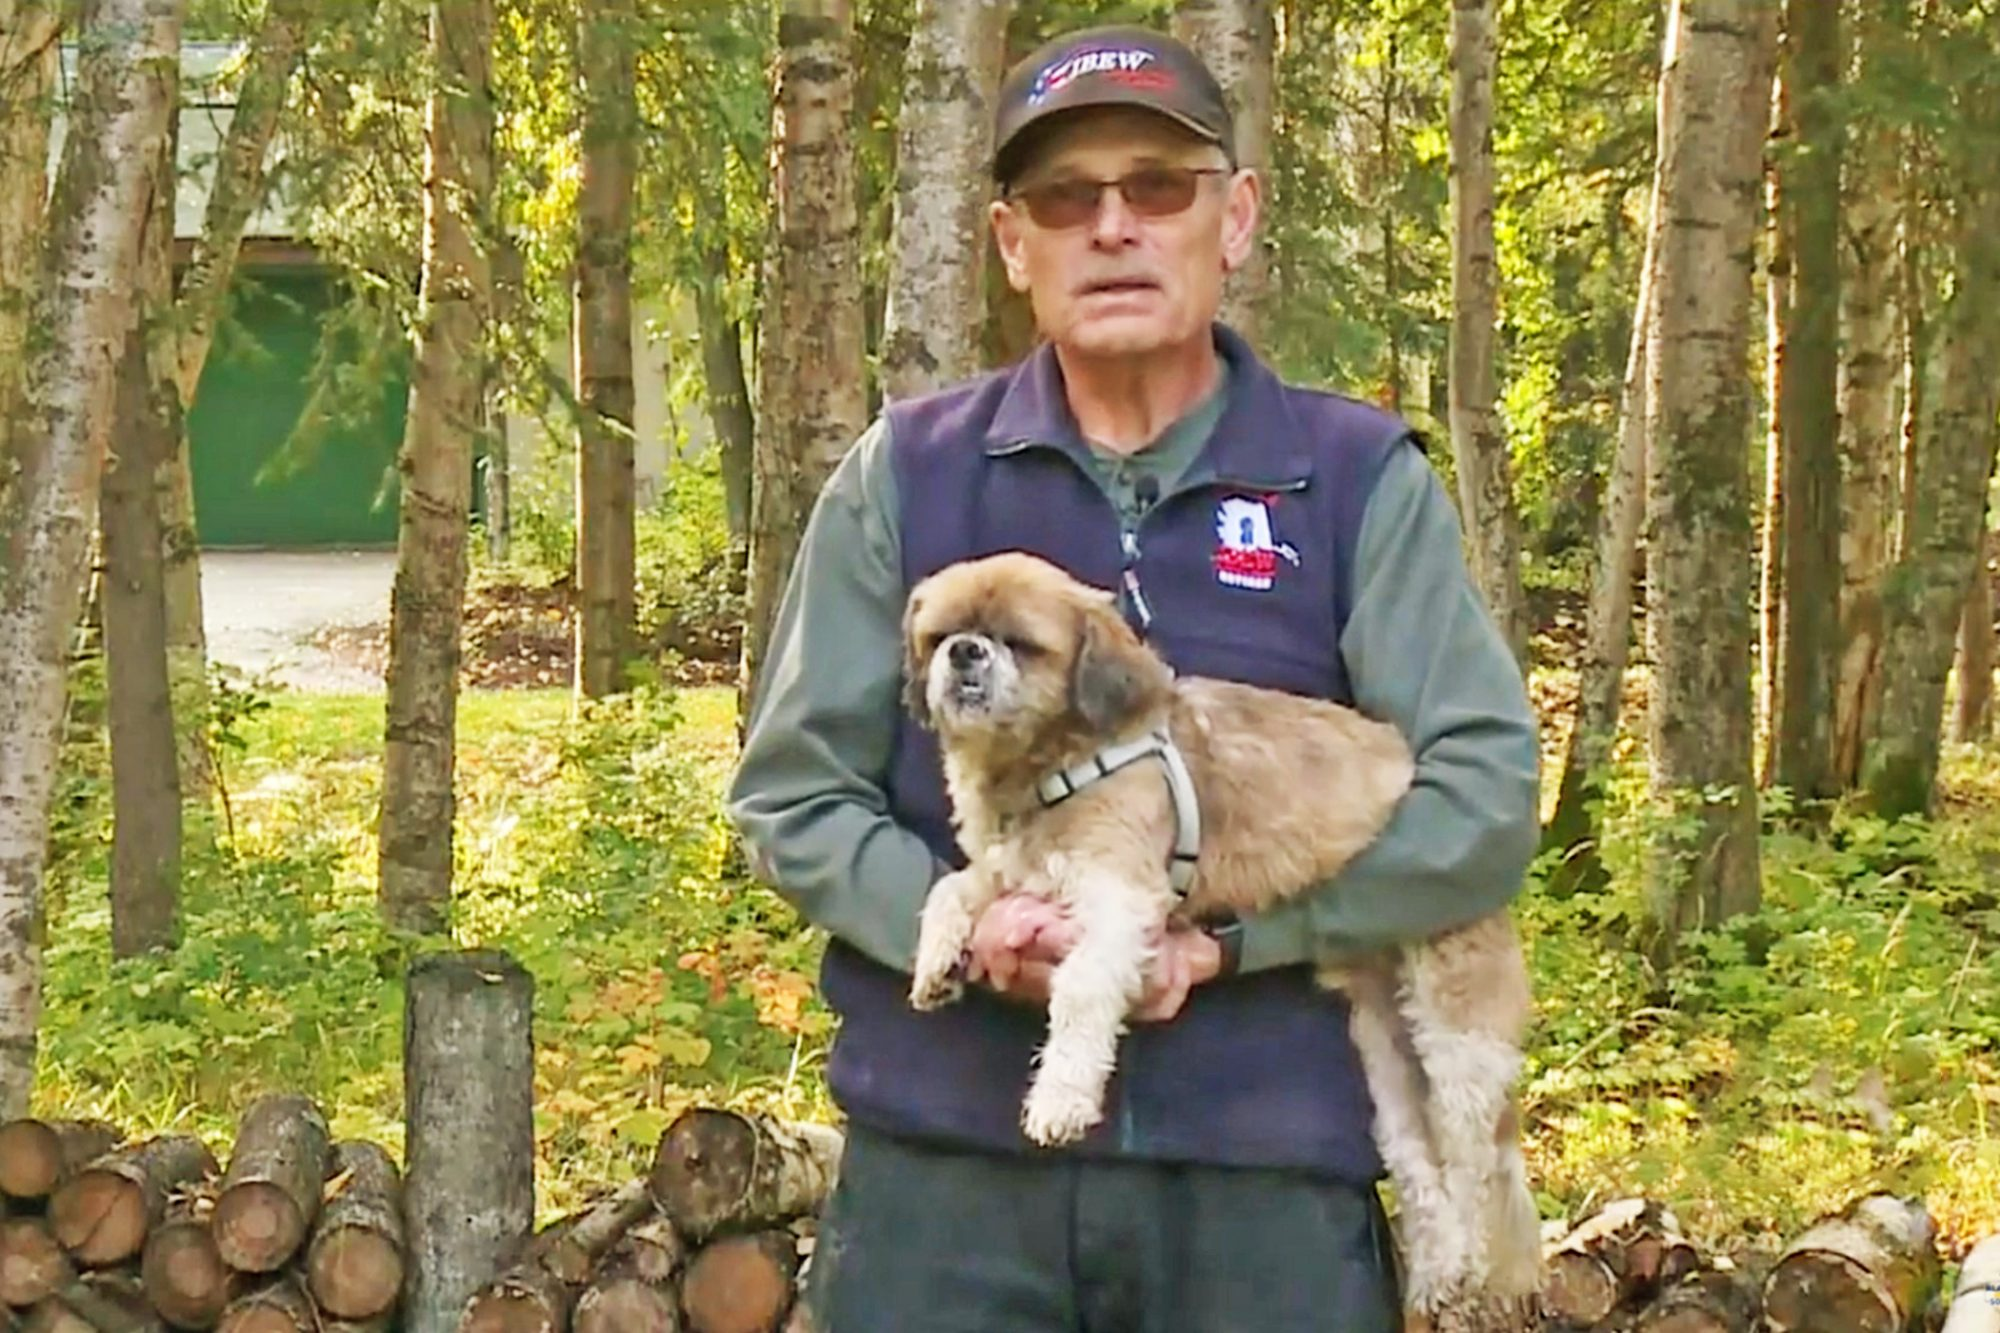 Mike Mitchell, Anchorage man and his dog make lap around the planet, walking over 24,901 miles in the past 8 years